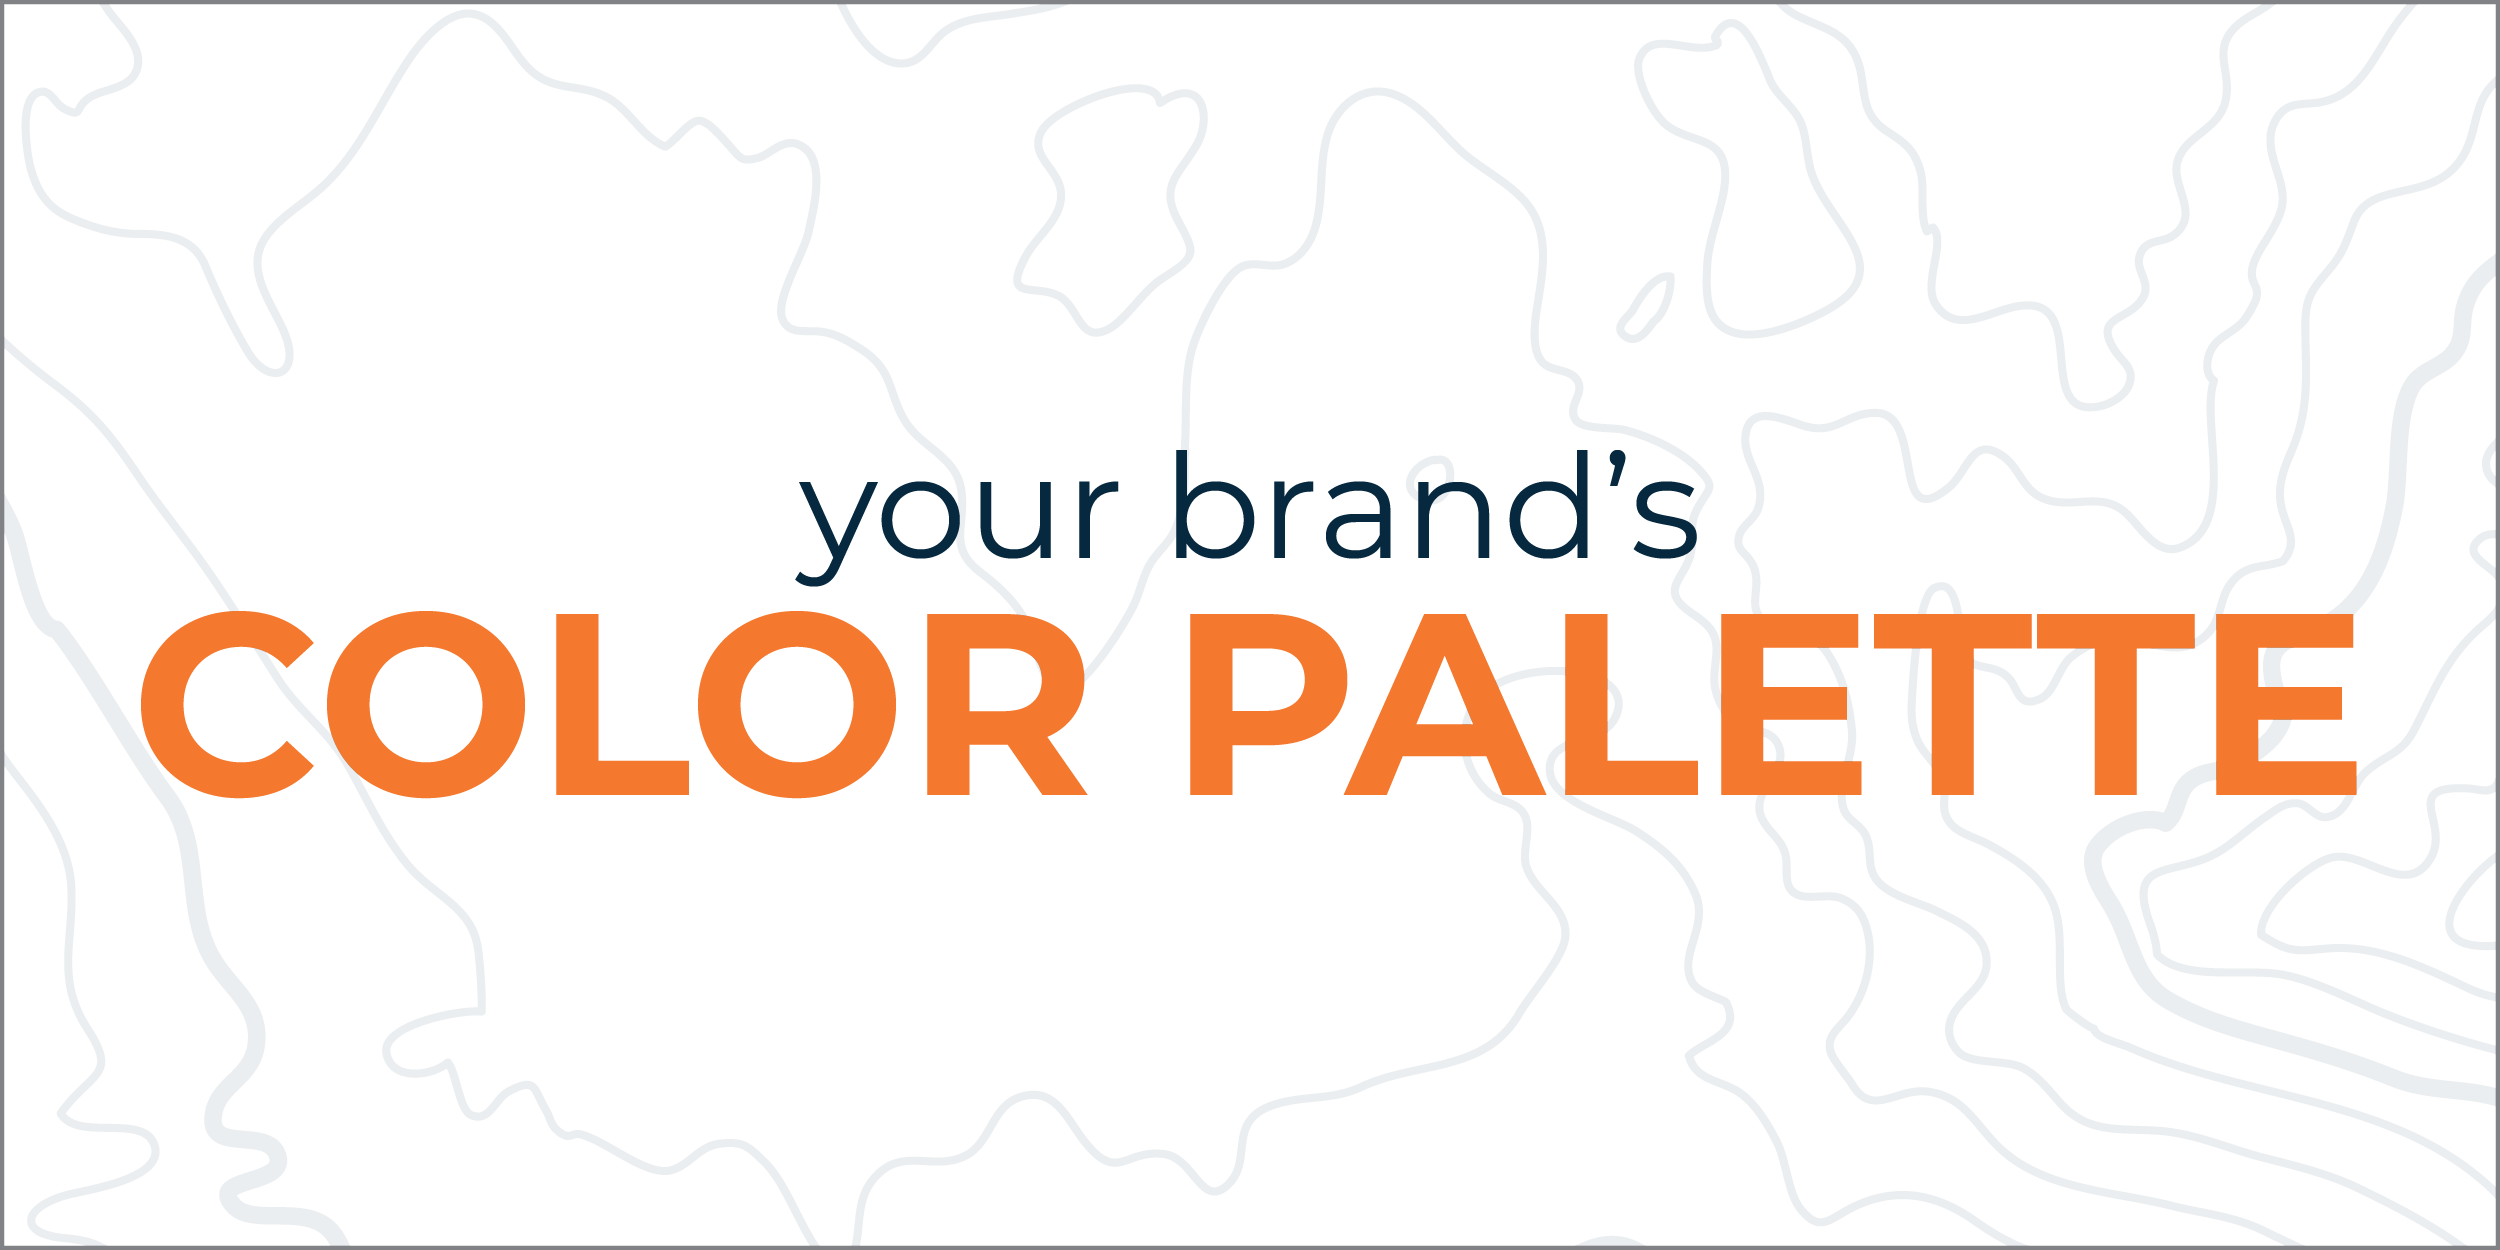 Your brand's color palette